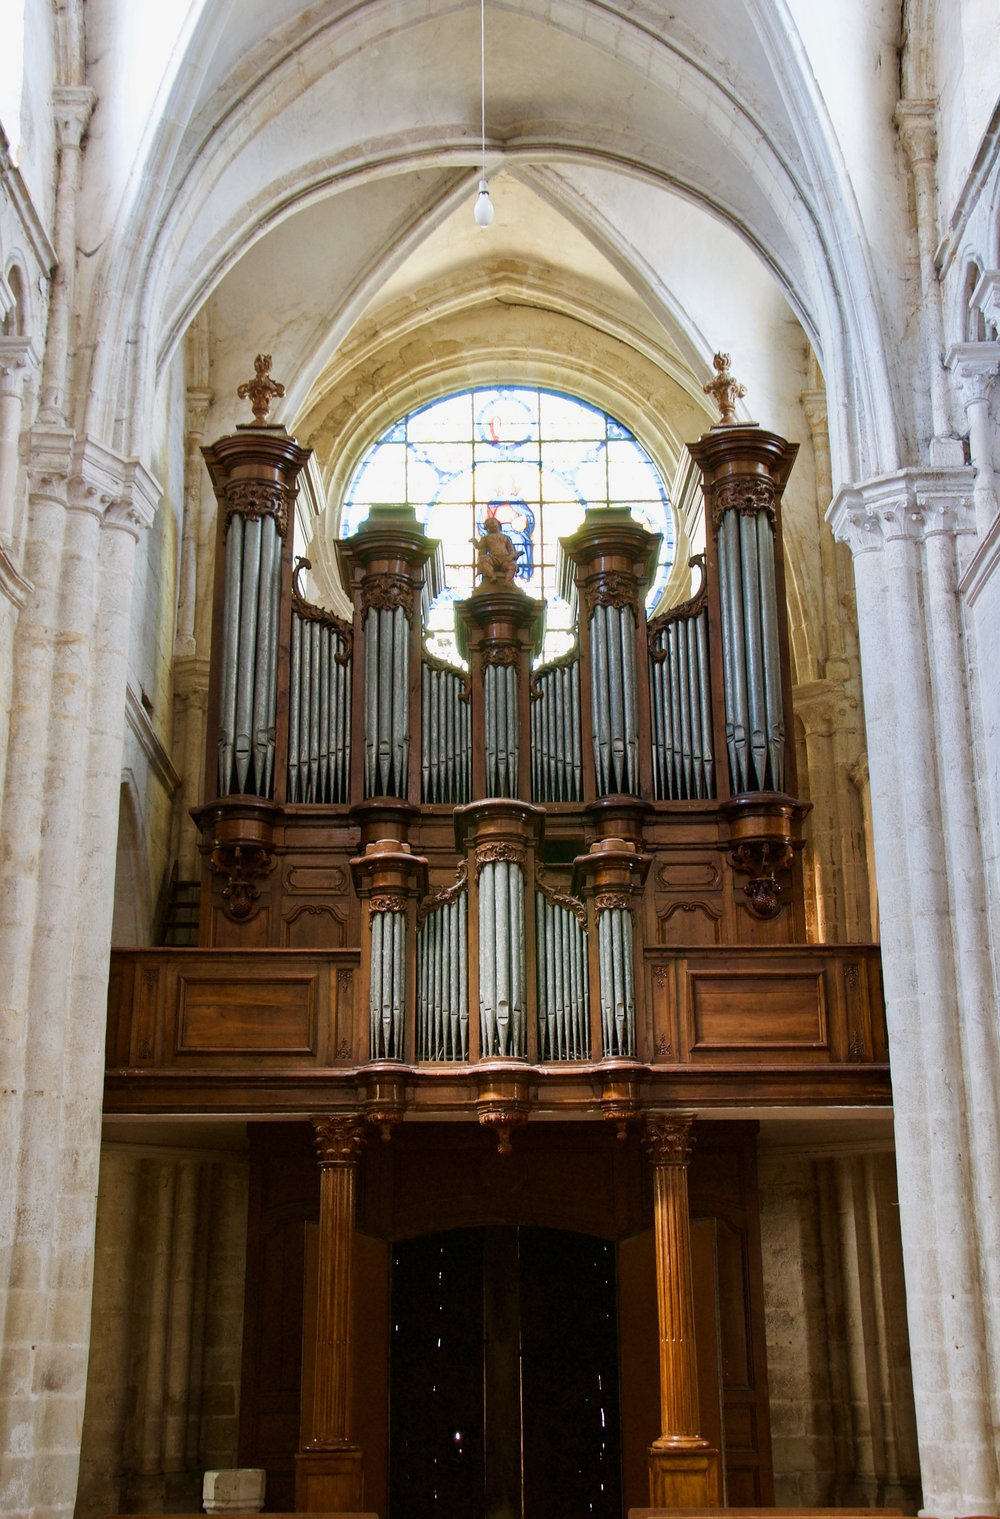 The historic organ of Rozay-en-Brie, which has the oldest keyboards in France.